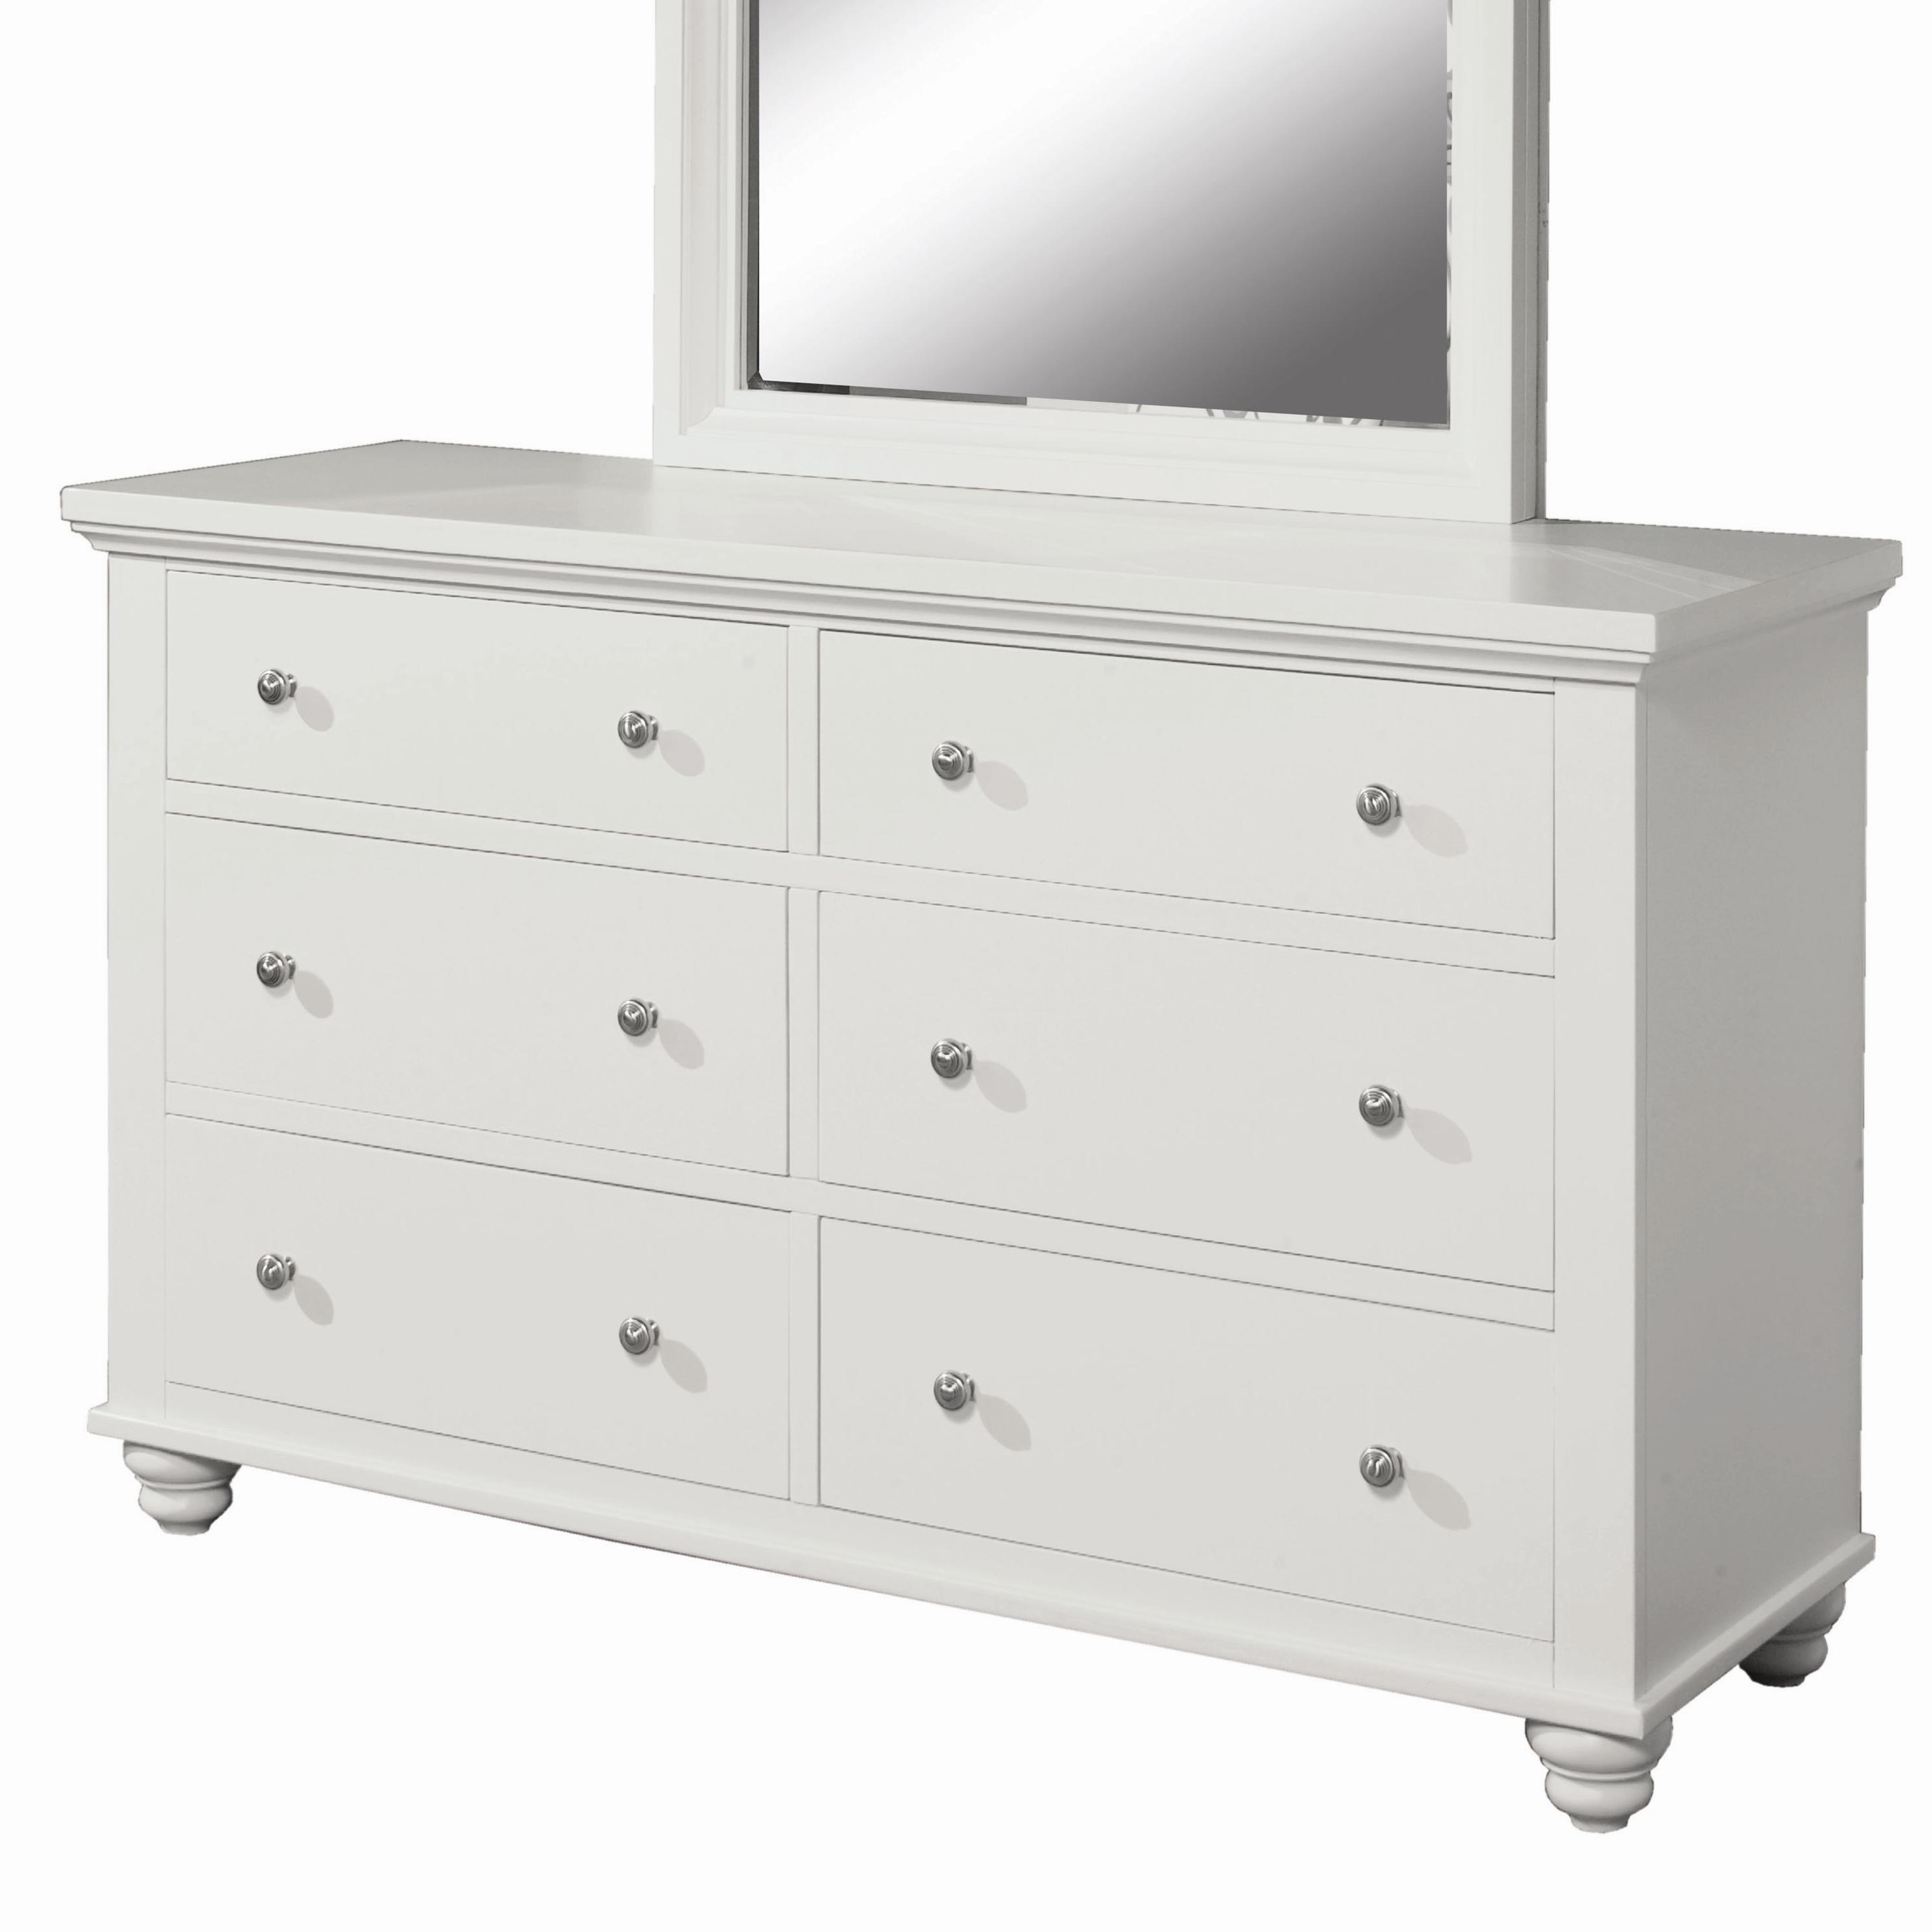 Aspenhome Cambridge 6 Drawer Dresser - Item Number: ICB-554-EGG